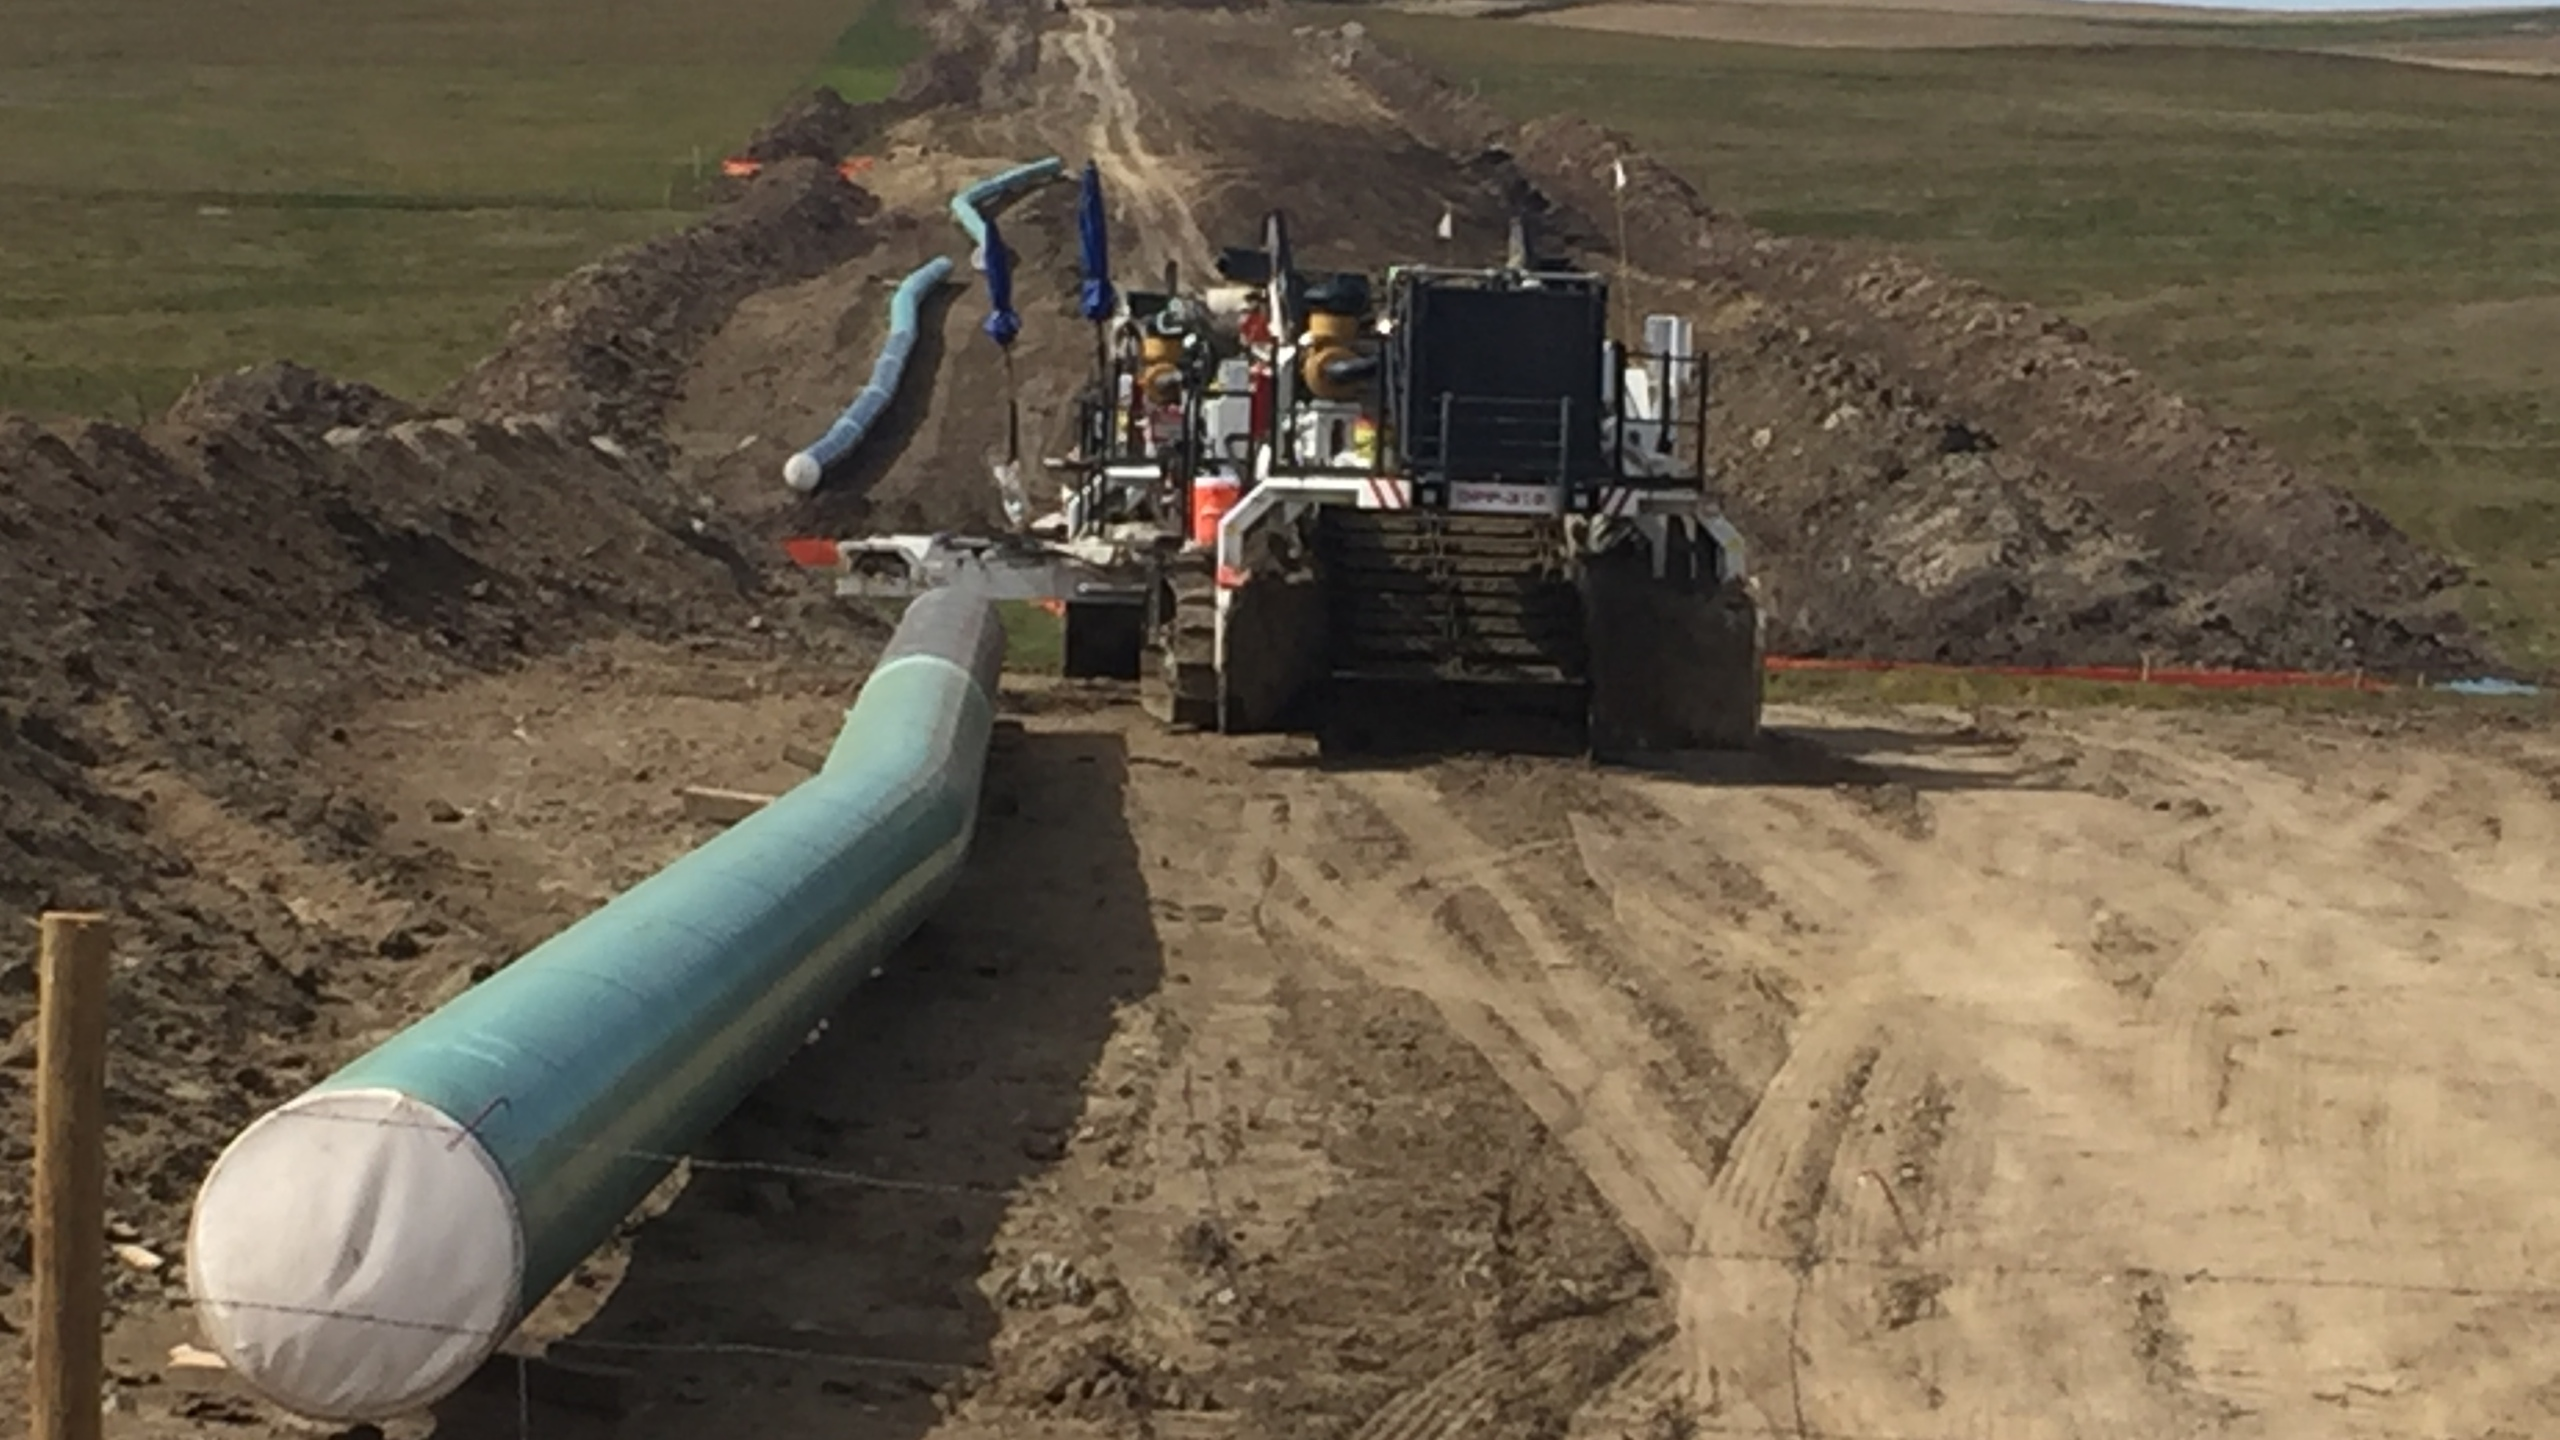 Dakota Access Pipeline_1473820442310.jpg